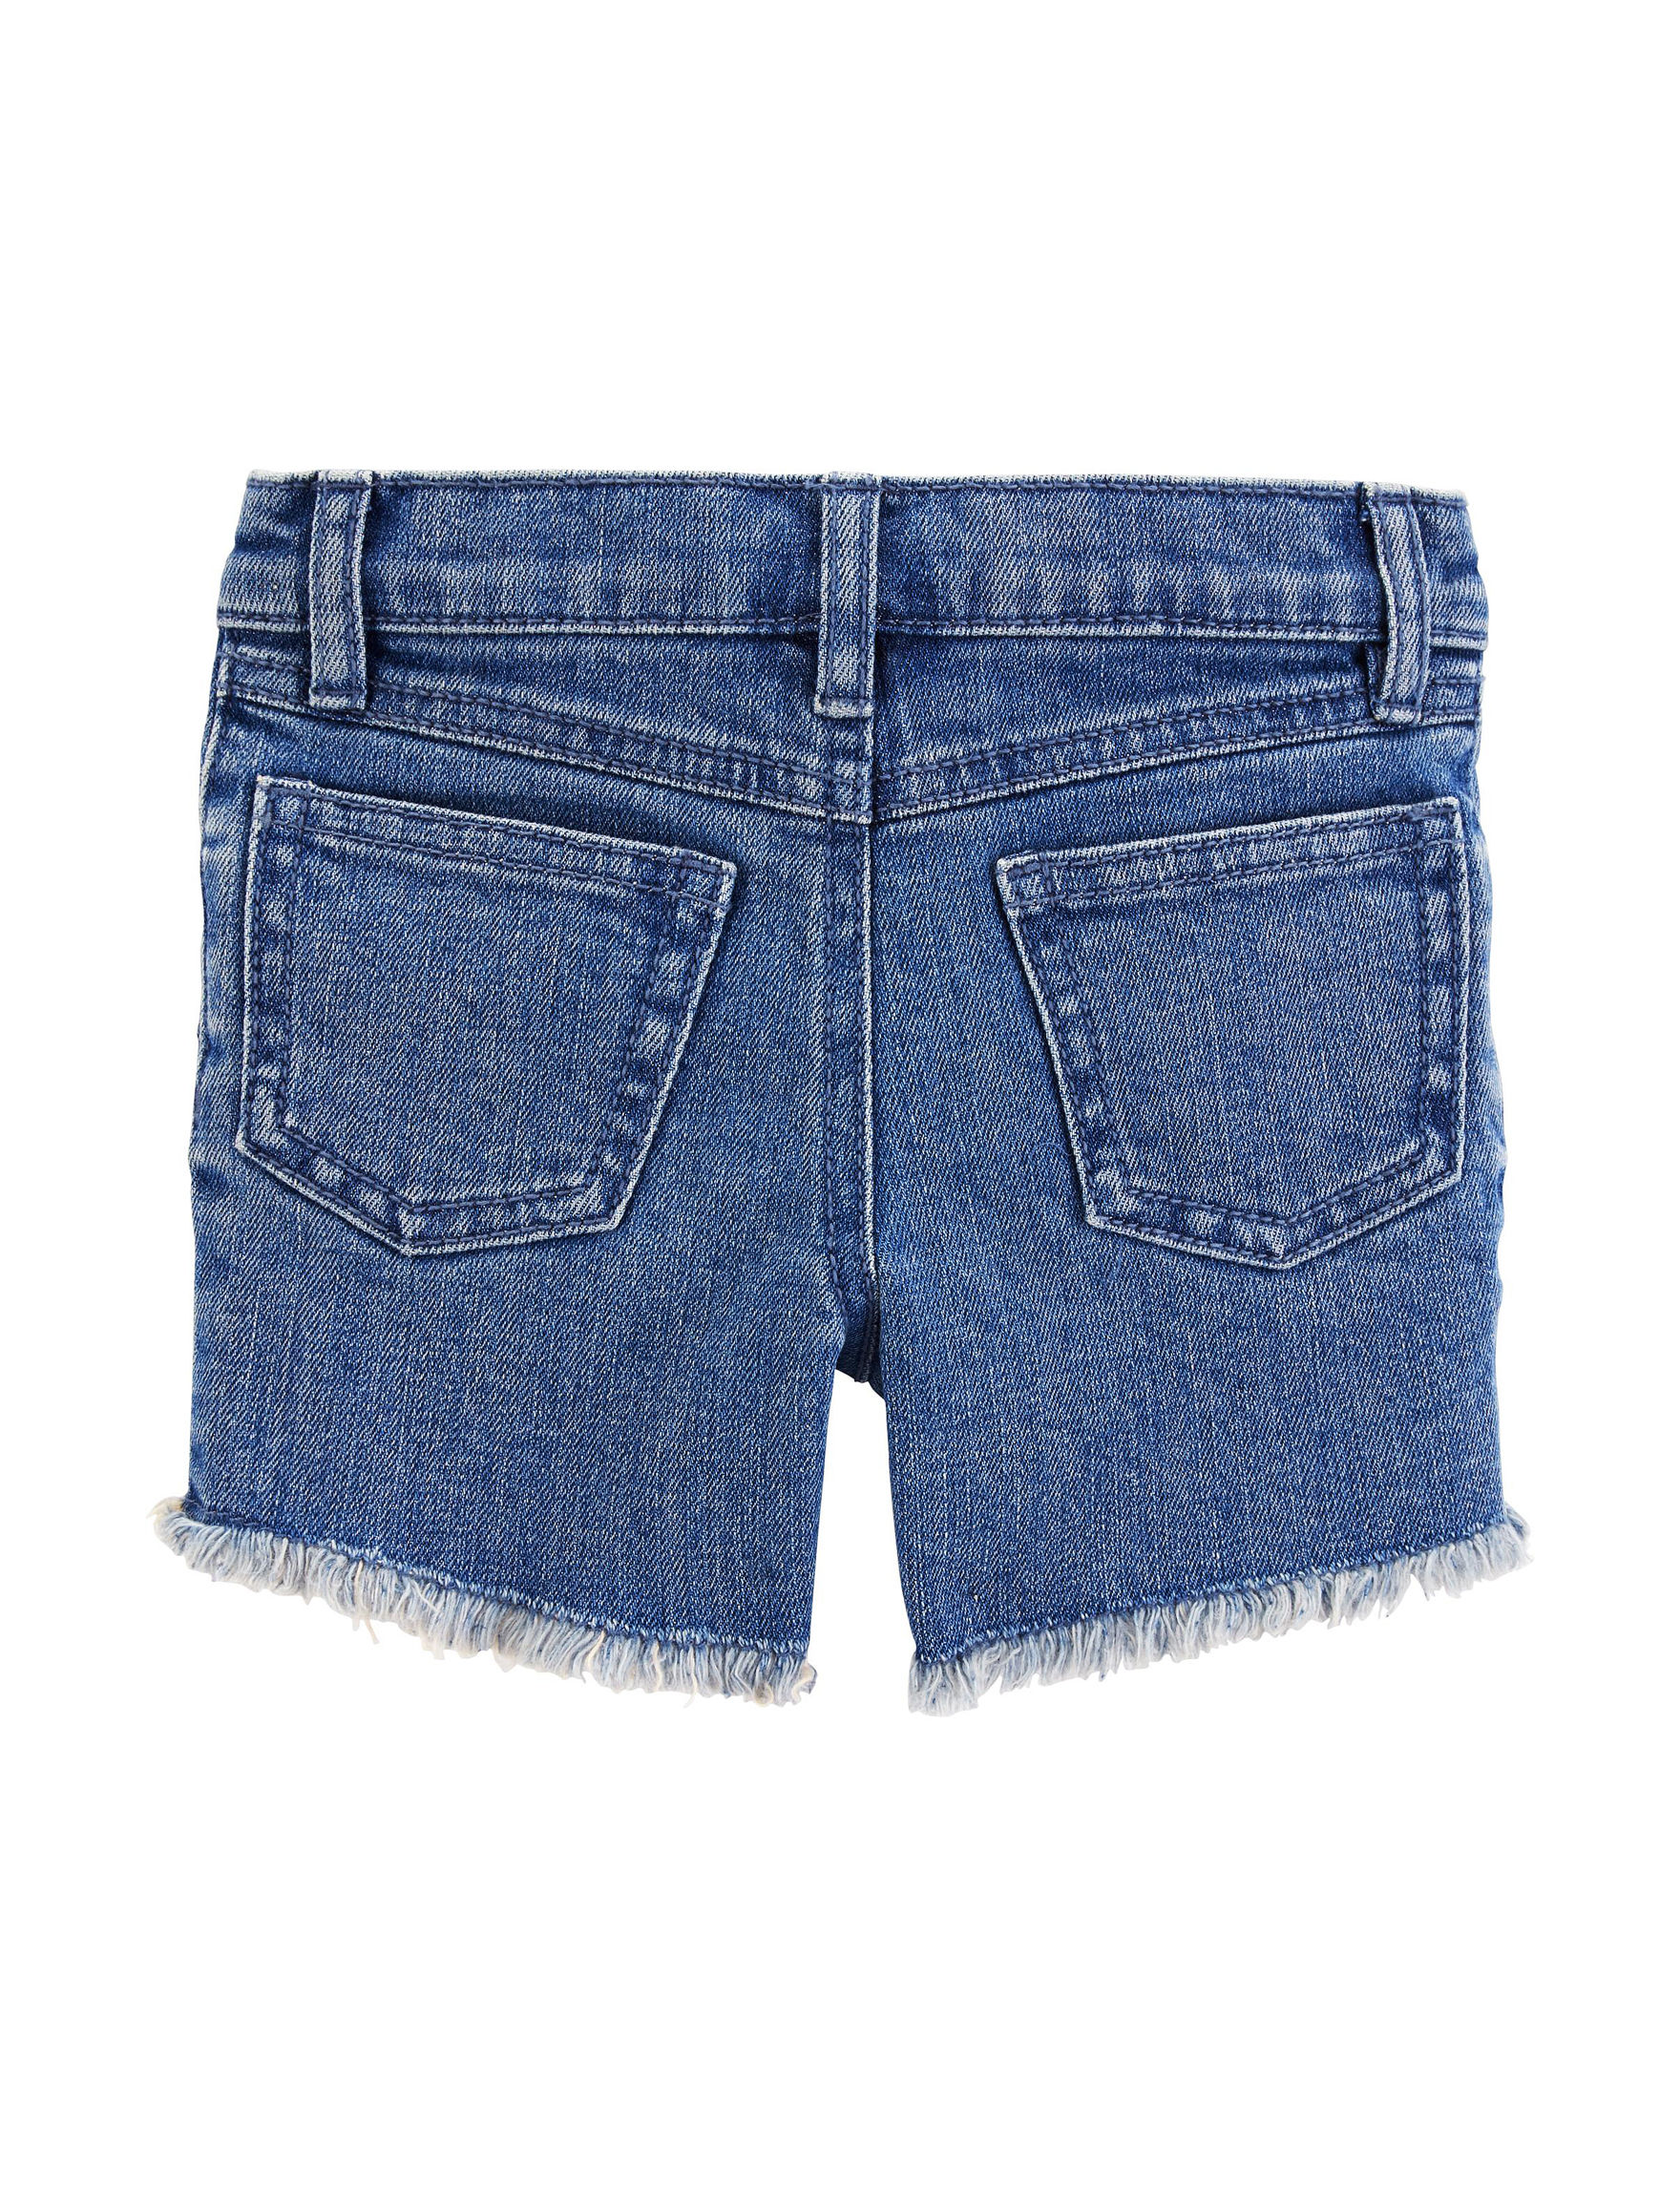 7d22f1e4d5 Carter's Frayed Sequin Heart Shorts - Toddler Girls | Stage Stores